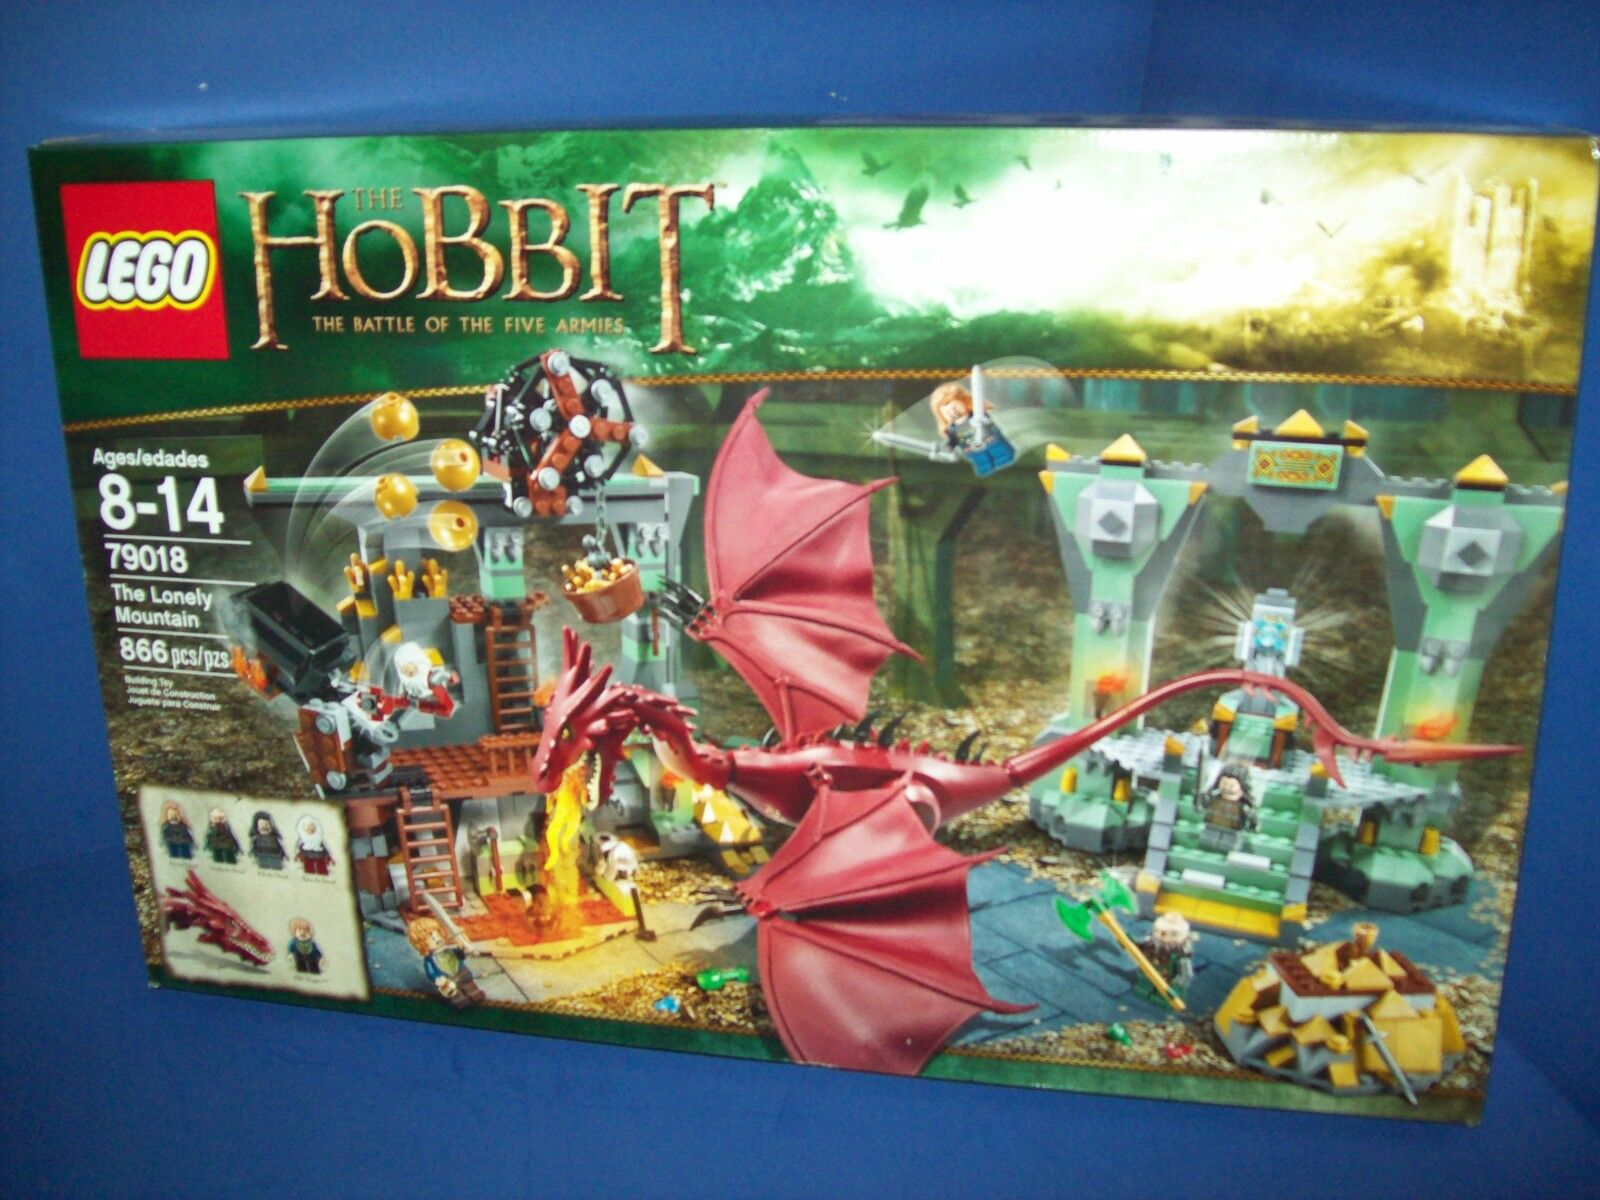 LEGO 79018 Hobbit The Lonely Mountain Factory Desolation of Smaug  - Sealed new